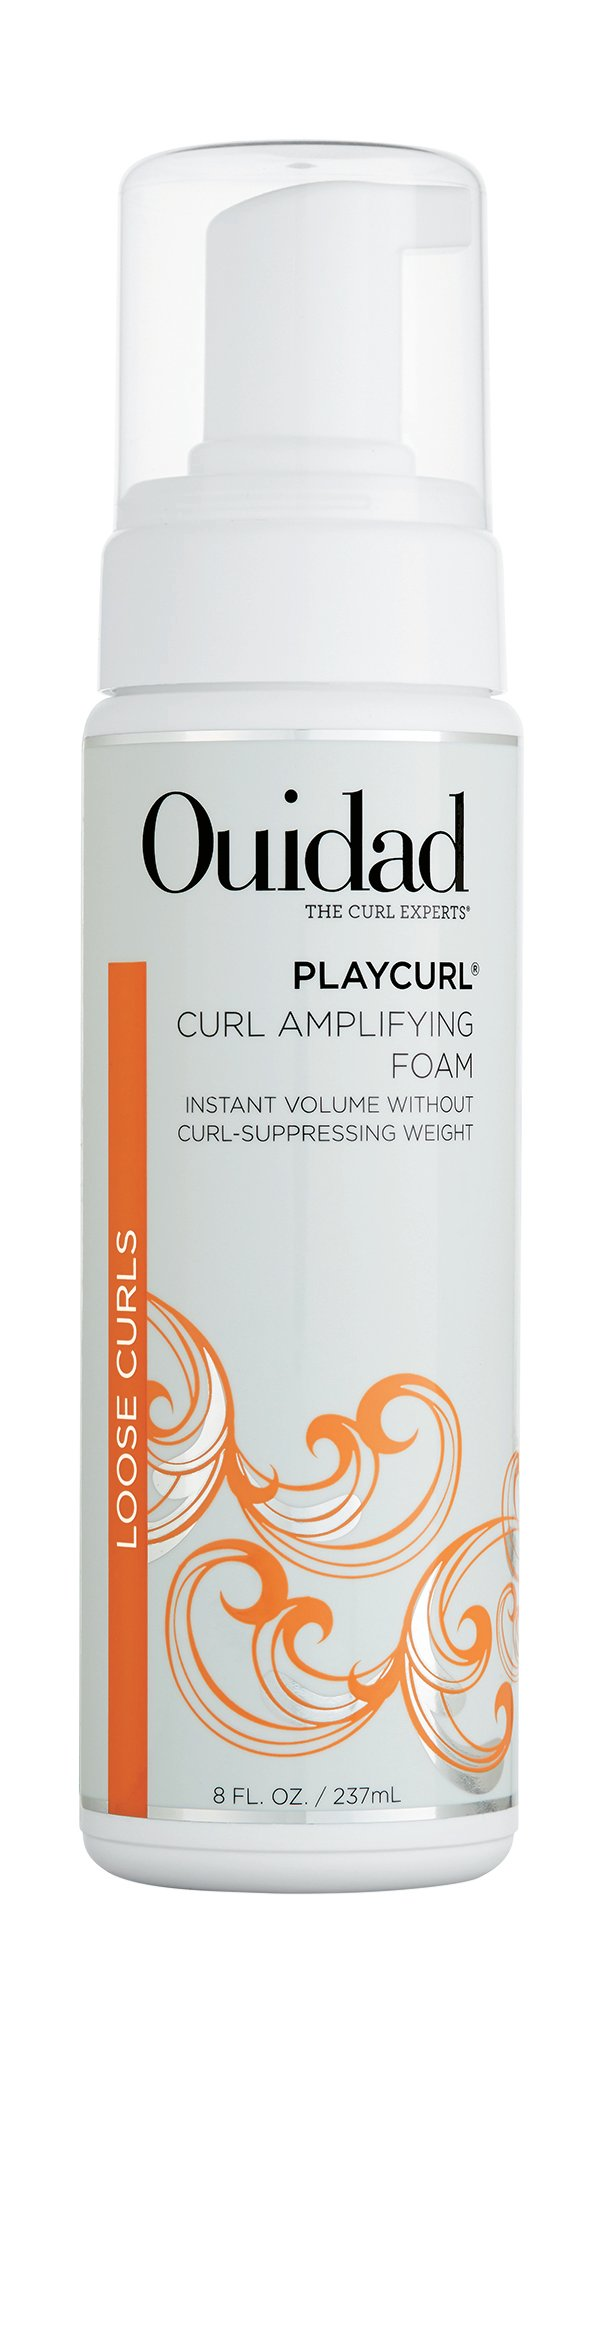 Ouidad  PlayCurl Curl Amplifying Foam has a layerable formula that won't weight down curls. The infusion of moisture and non-drying polymers creates a full-bodied, perfect curl pattern.